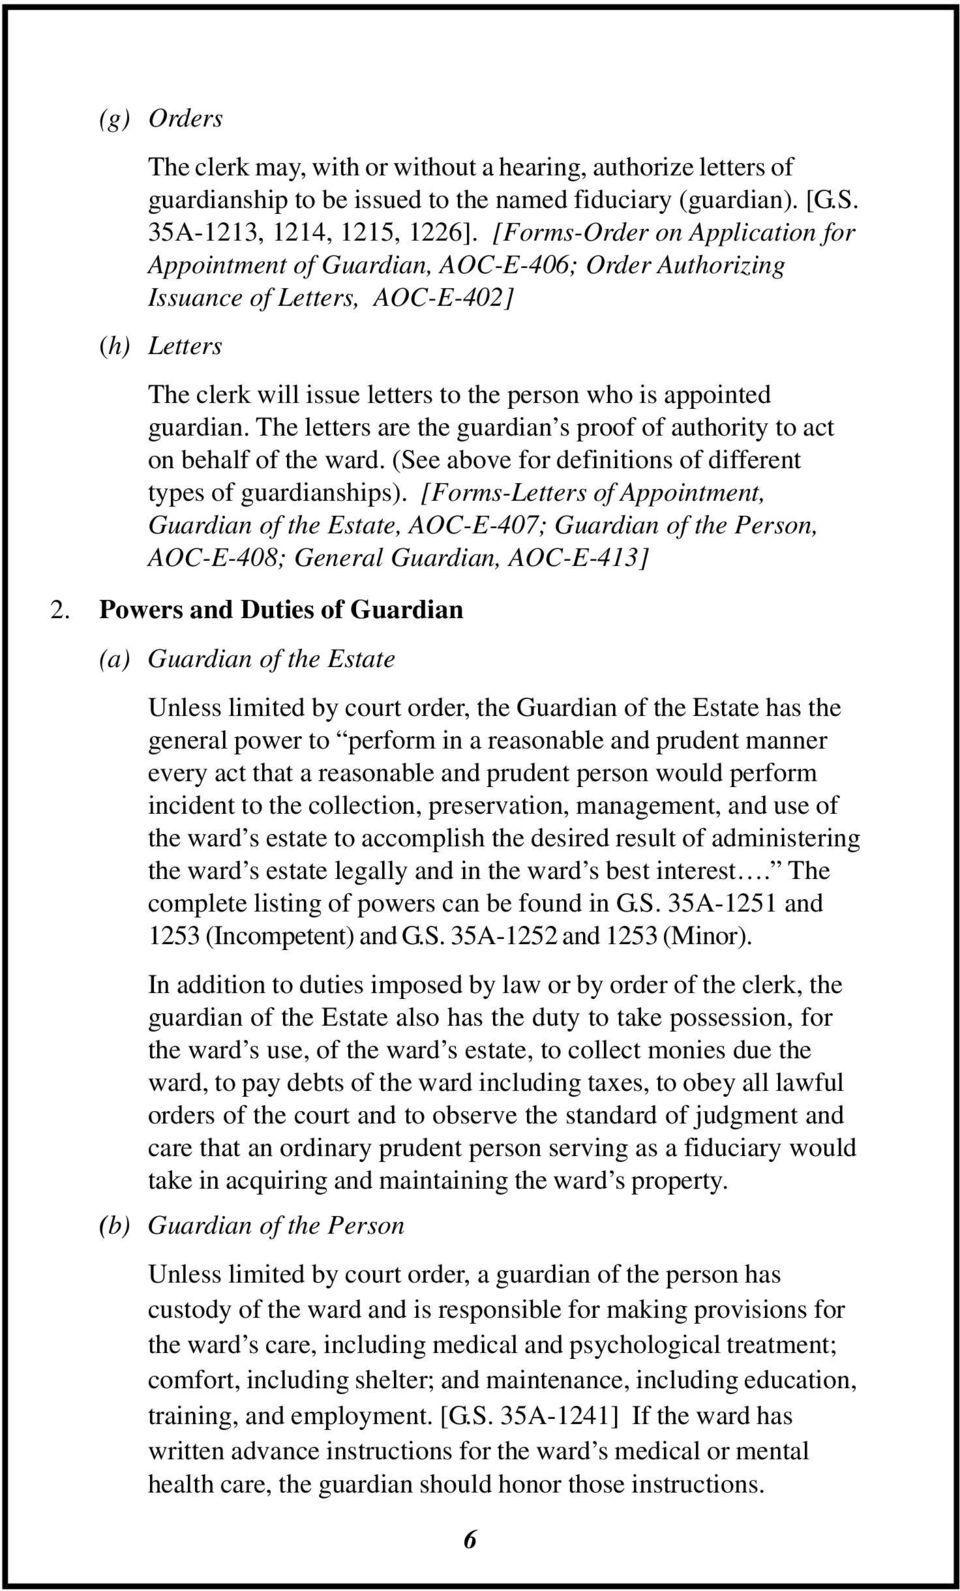 The letters are the guardian s proof of authority to act on behalf of the ward. (See above for definitions of different types of guardianships).